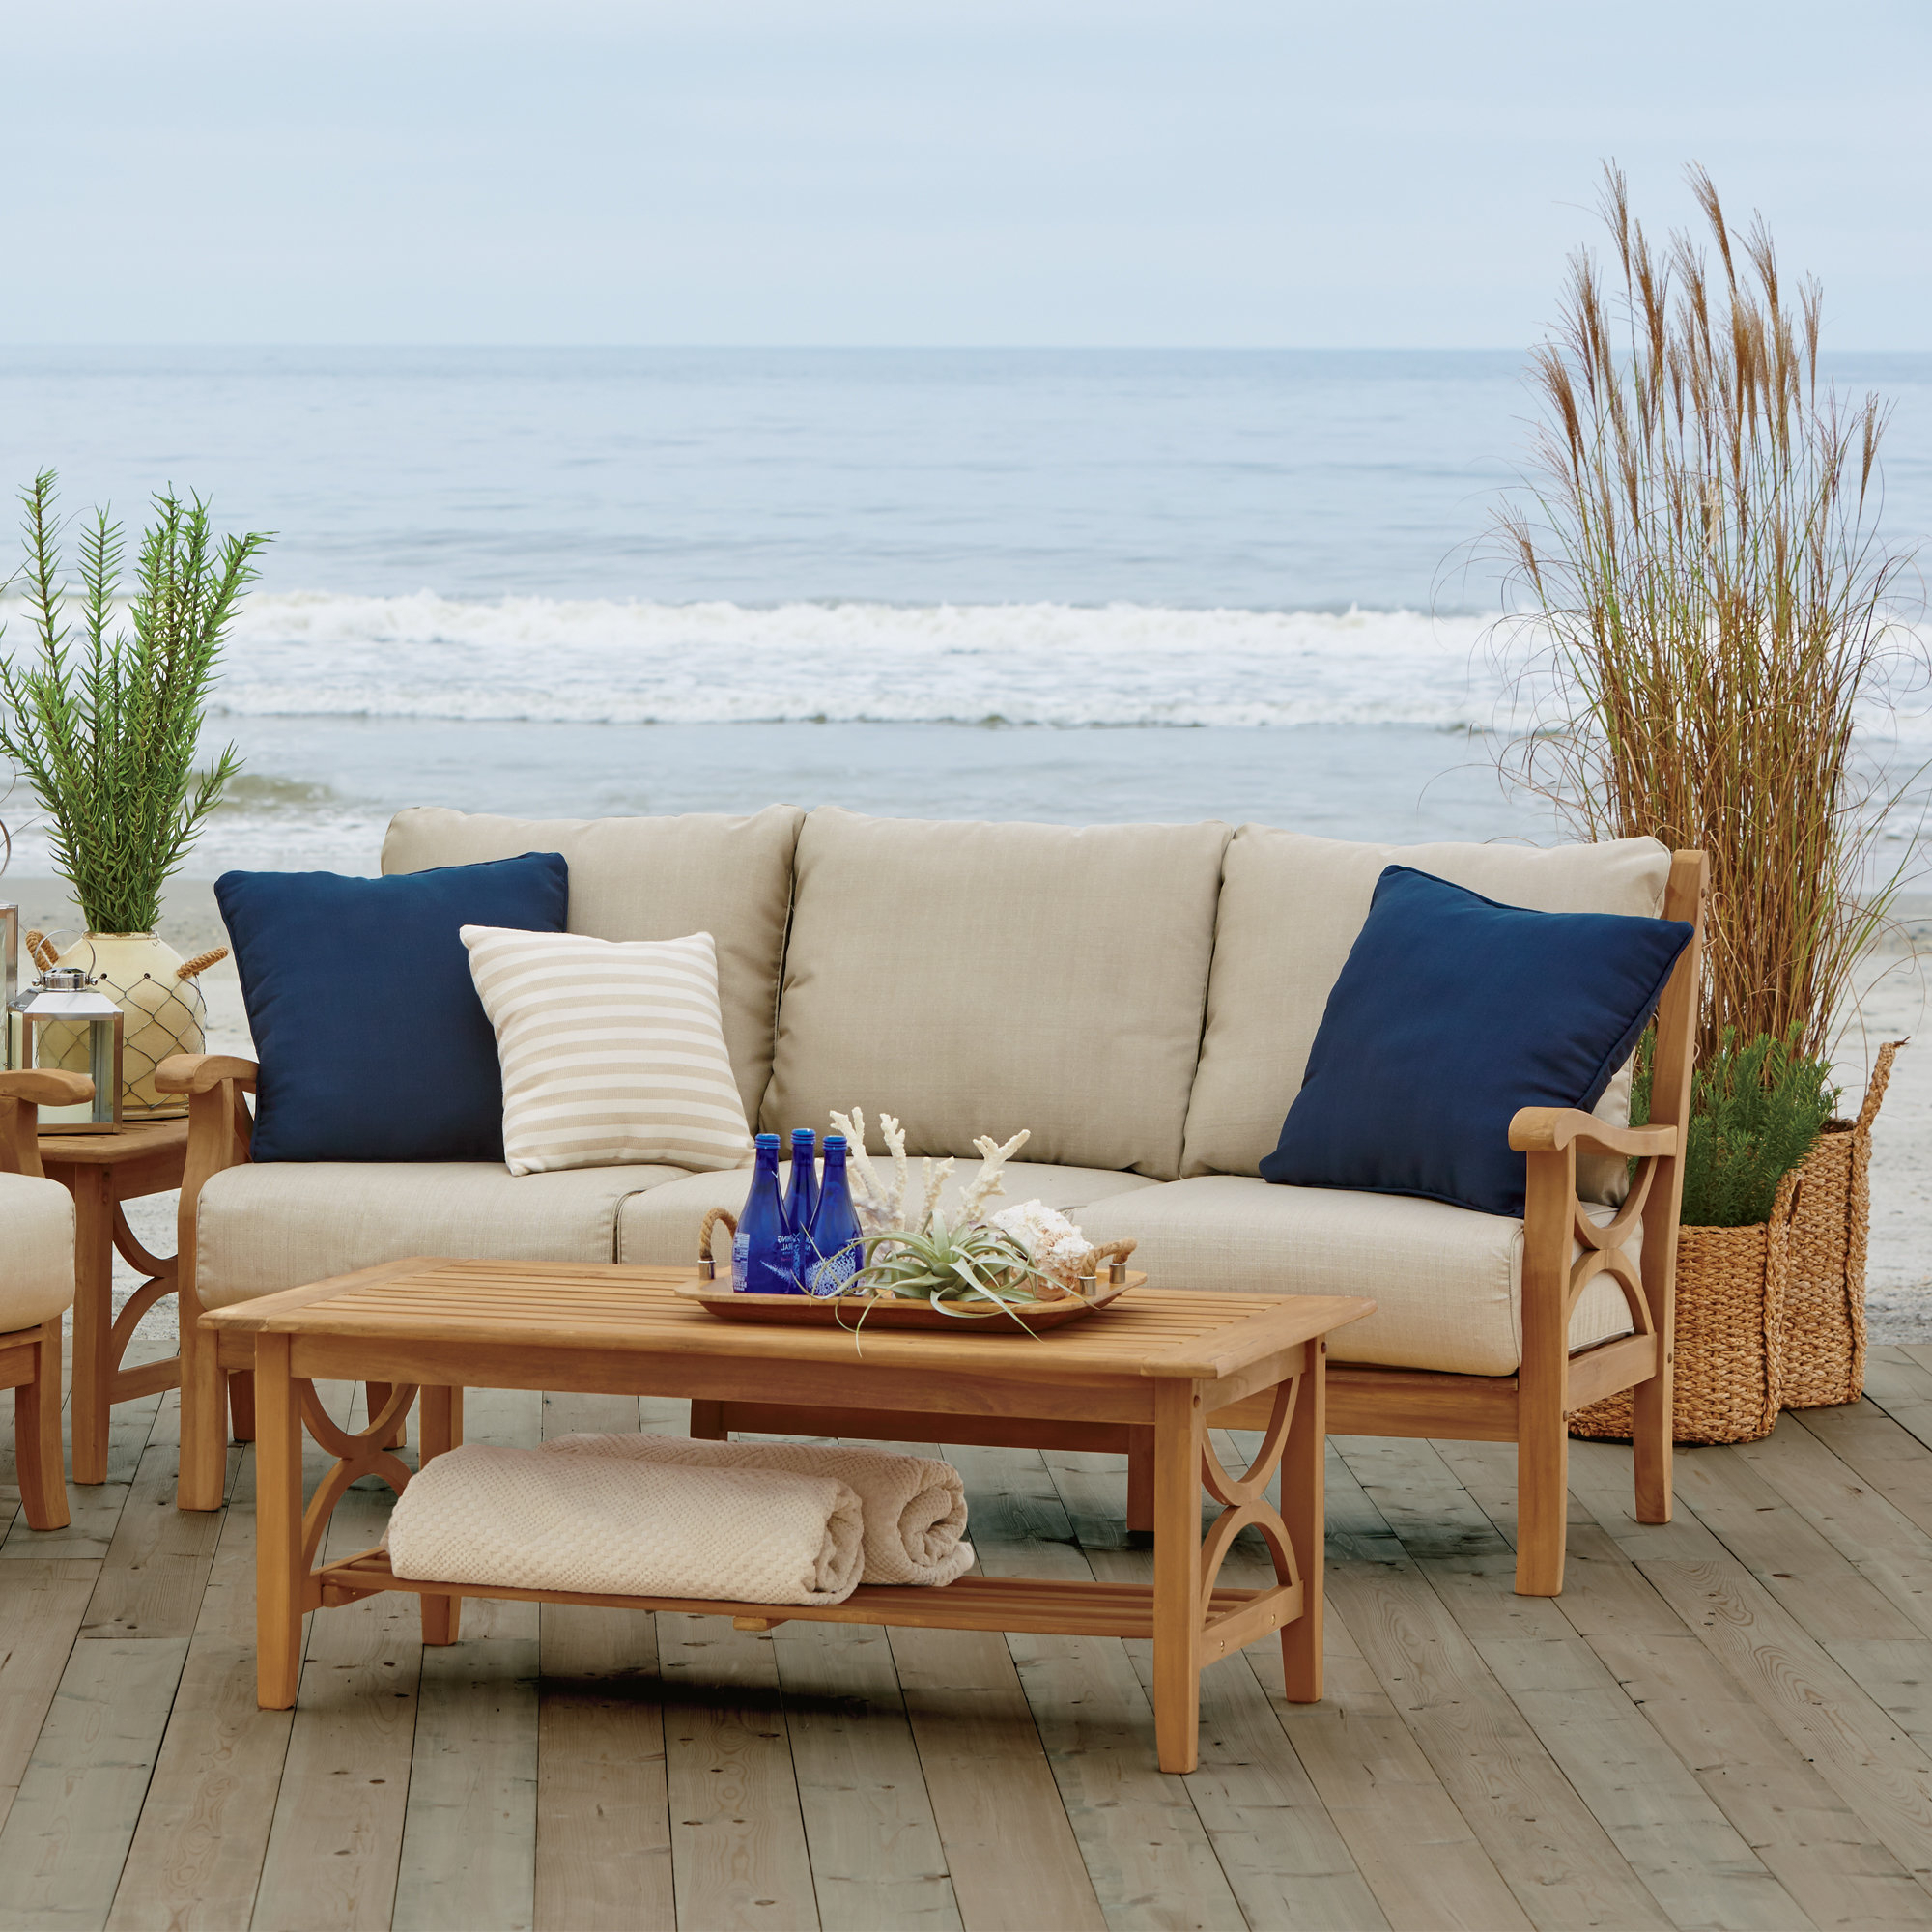 Brunswick Teak Patio Sofa With Cushions Within Most Current Summerton Teak Patio Sofas With Cushions (Gallery 8 of 20)